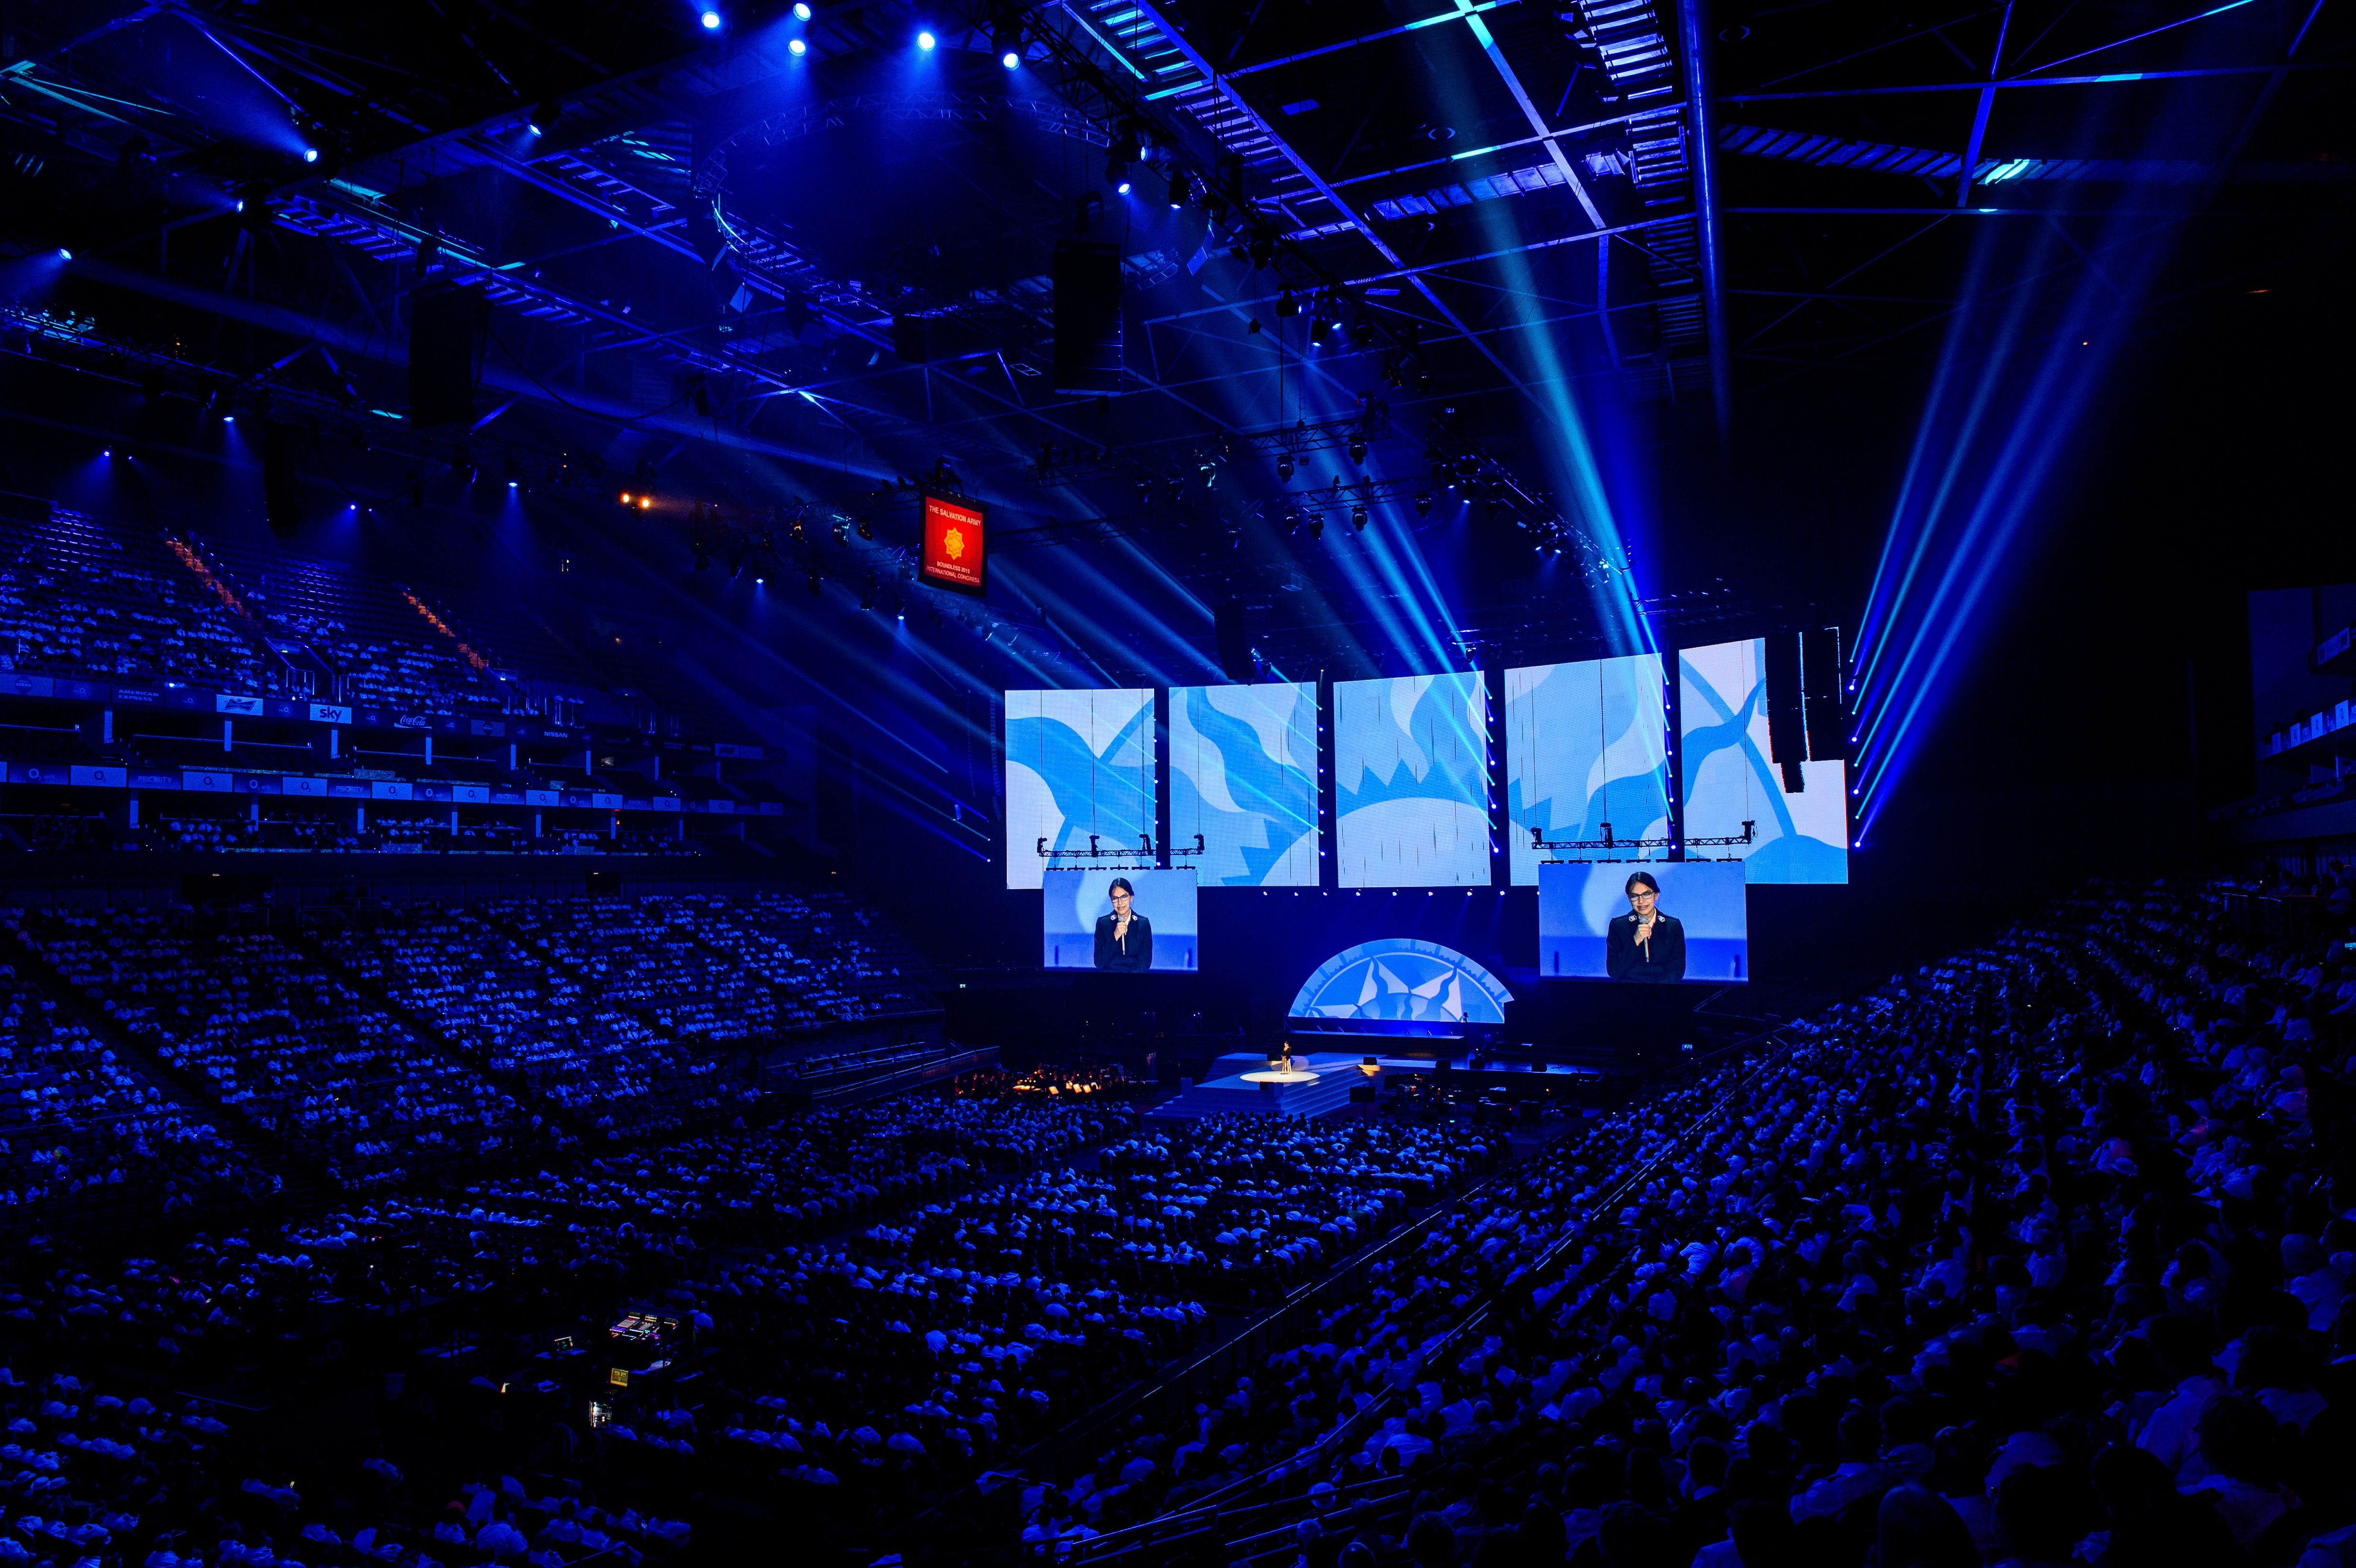 Salvation Army's 150th Anniversary at London's O2 Arena